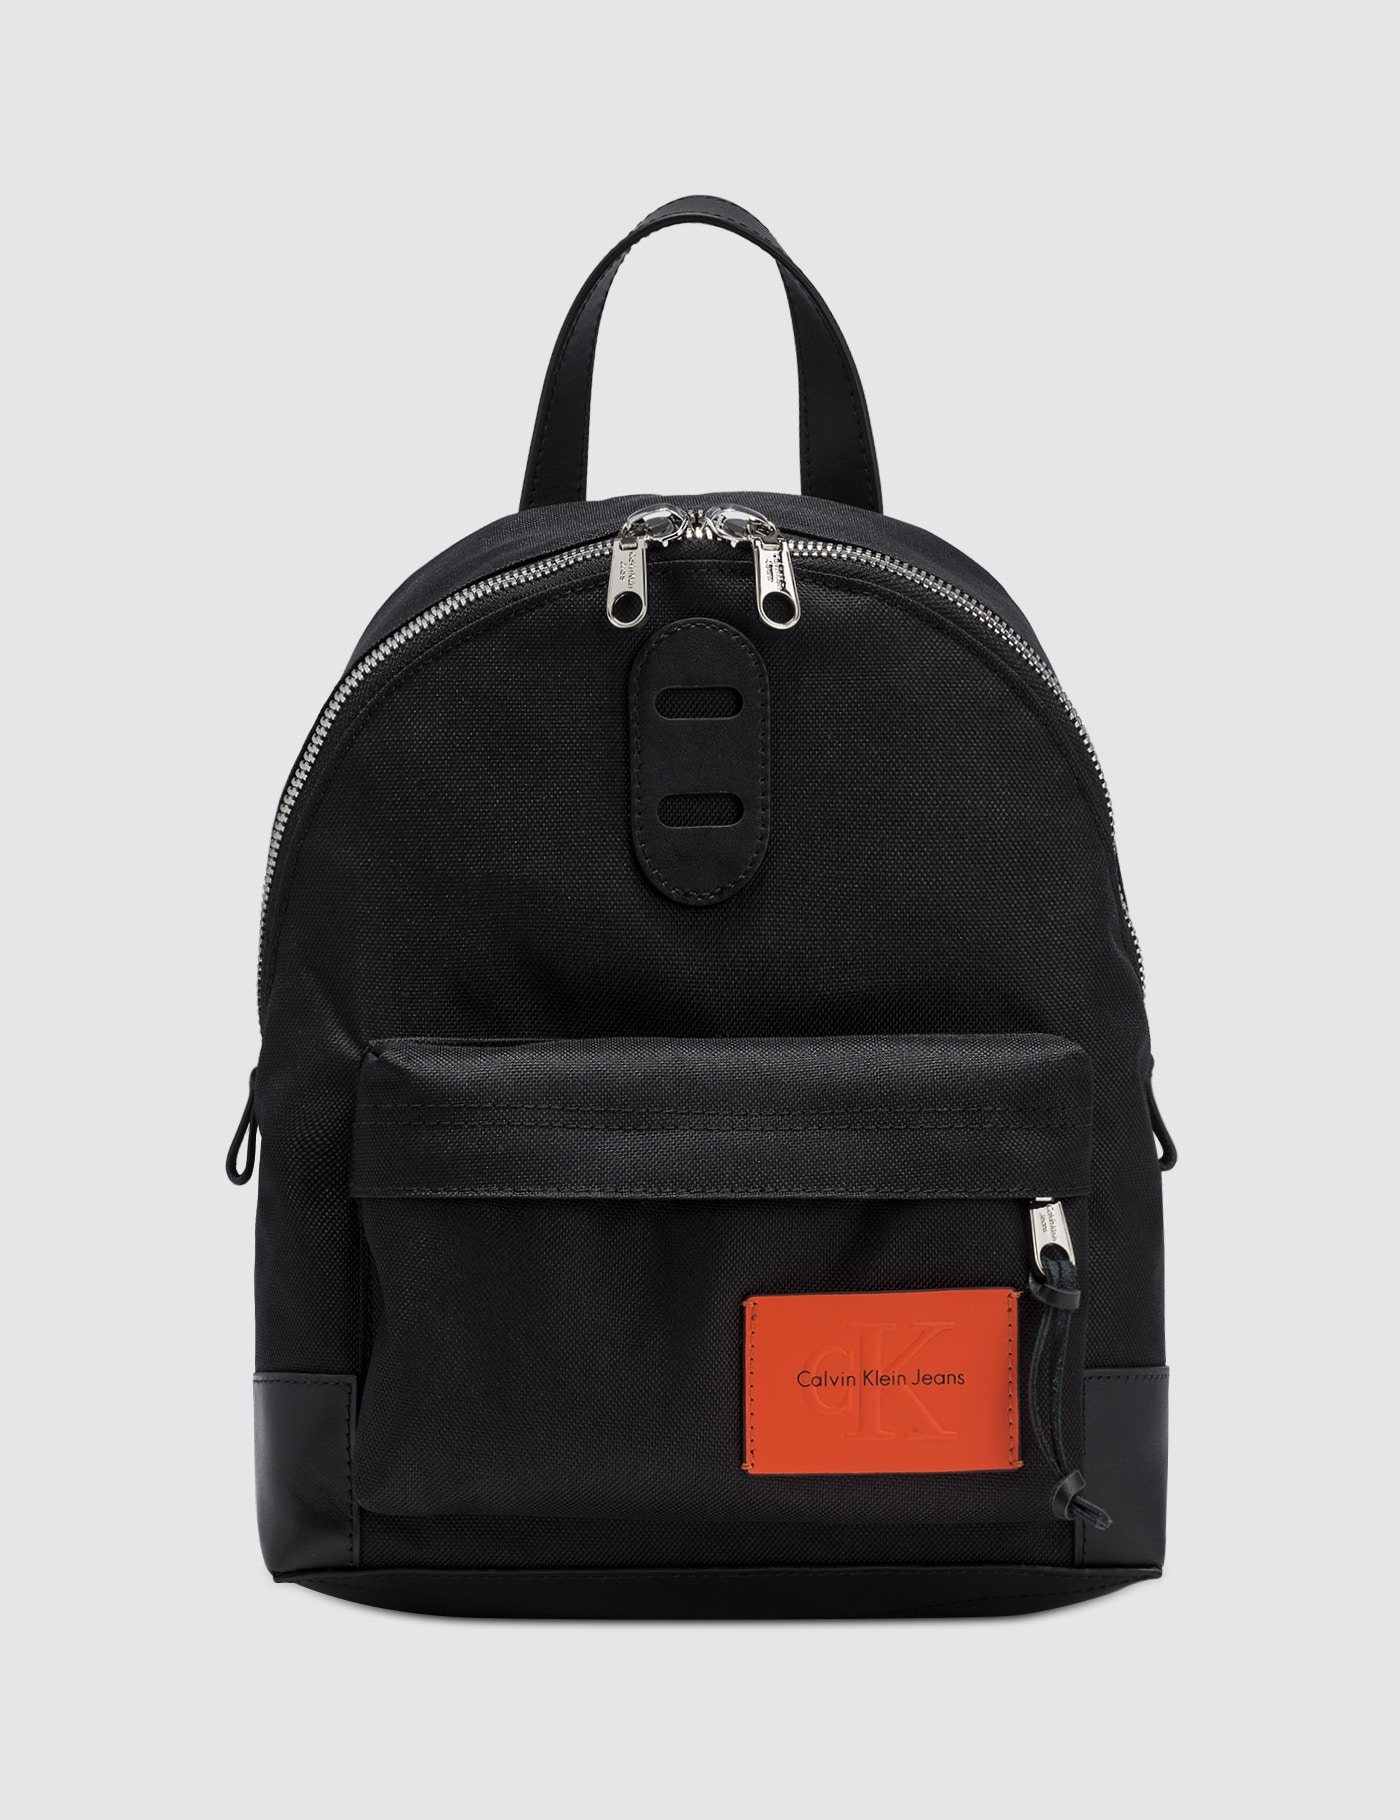 19b1e7dff3524f Calvin Klein Jeans Campus Backpack; Calvin Klein Jeans Campus Backpack ...